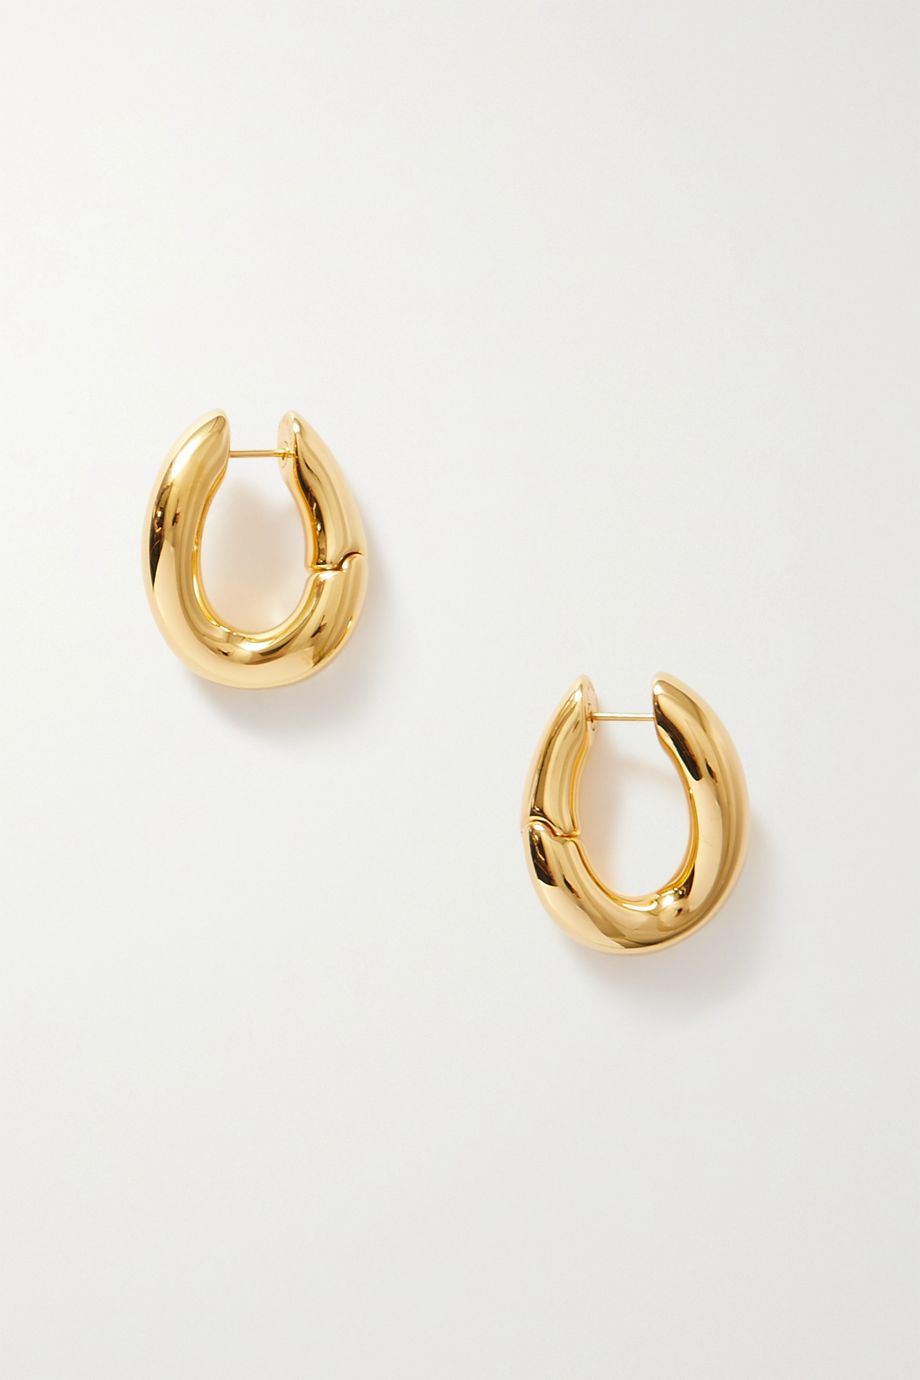 Balenciaga Loop gold-tone hoop earrings